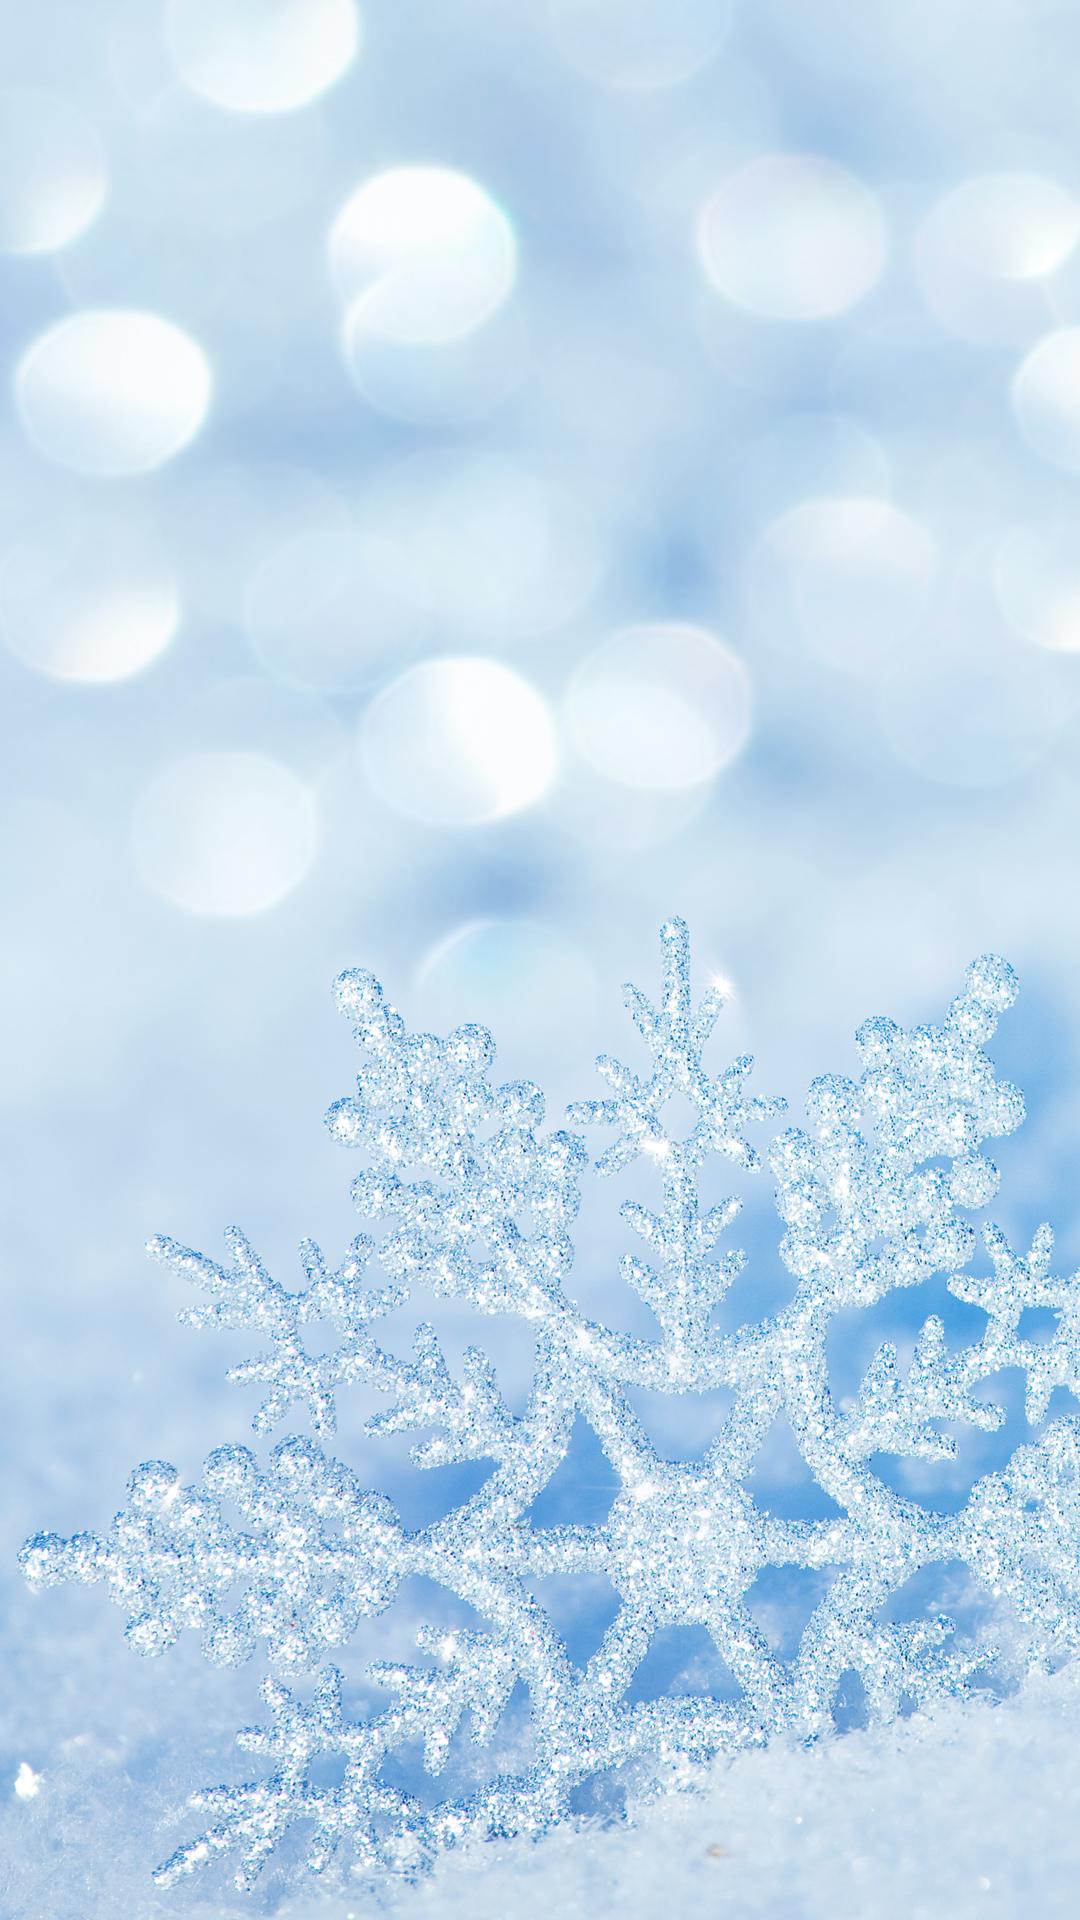 Winter Snowflake iPhone 7 Plus Wallpaper.